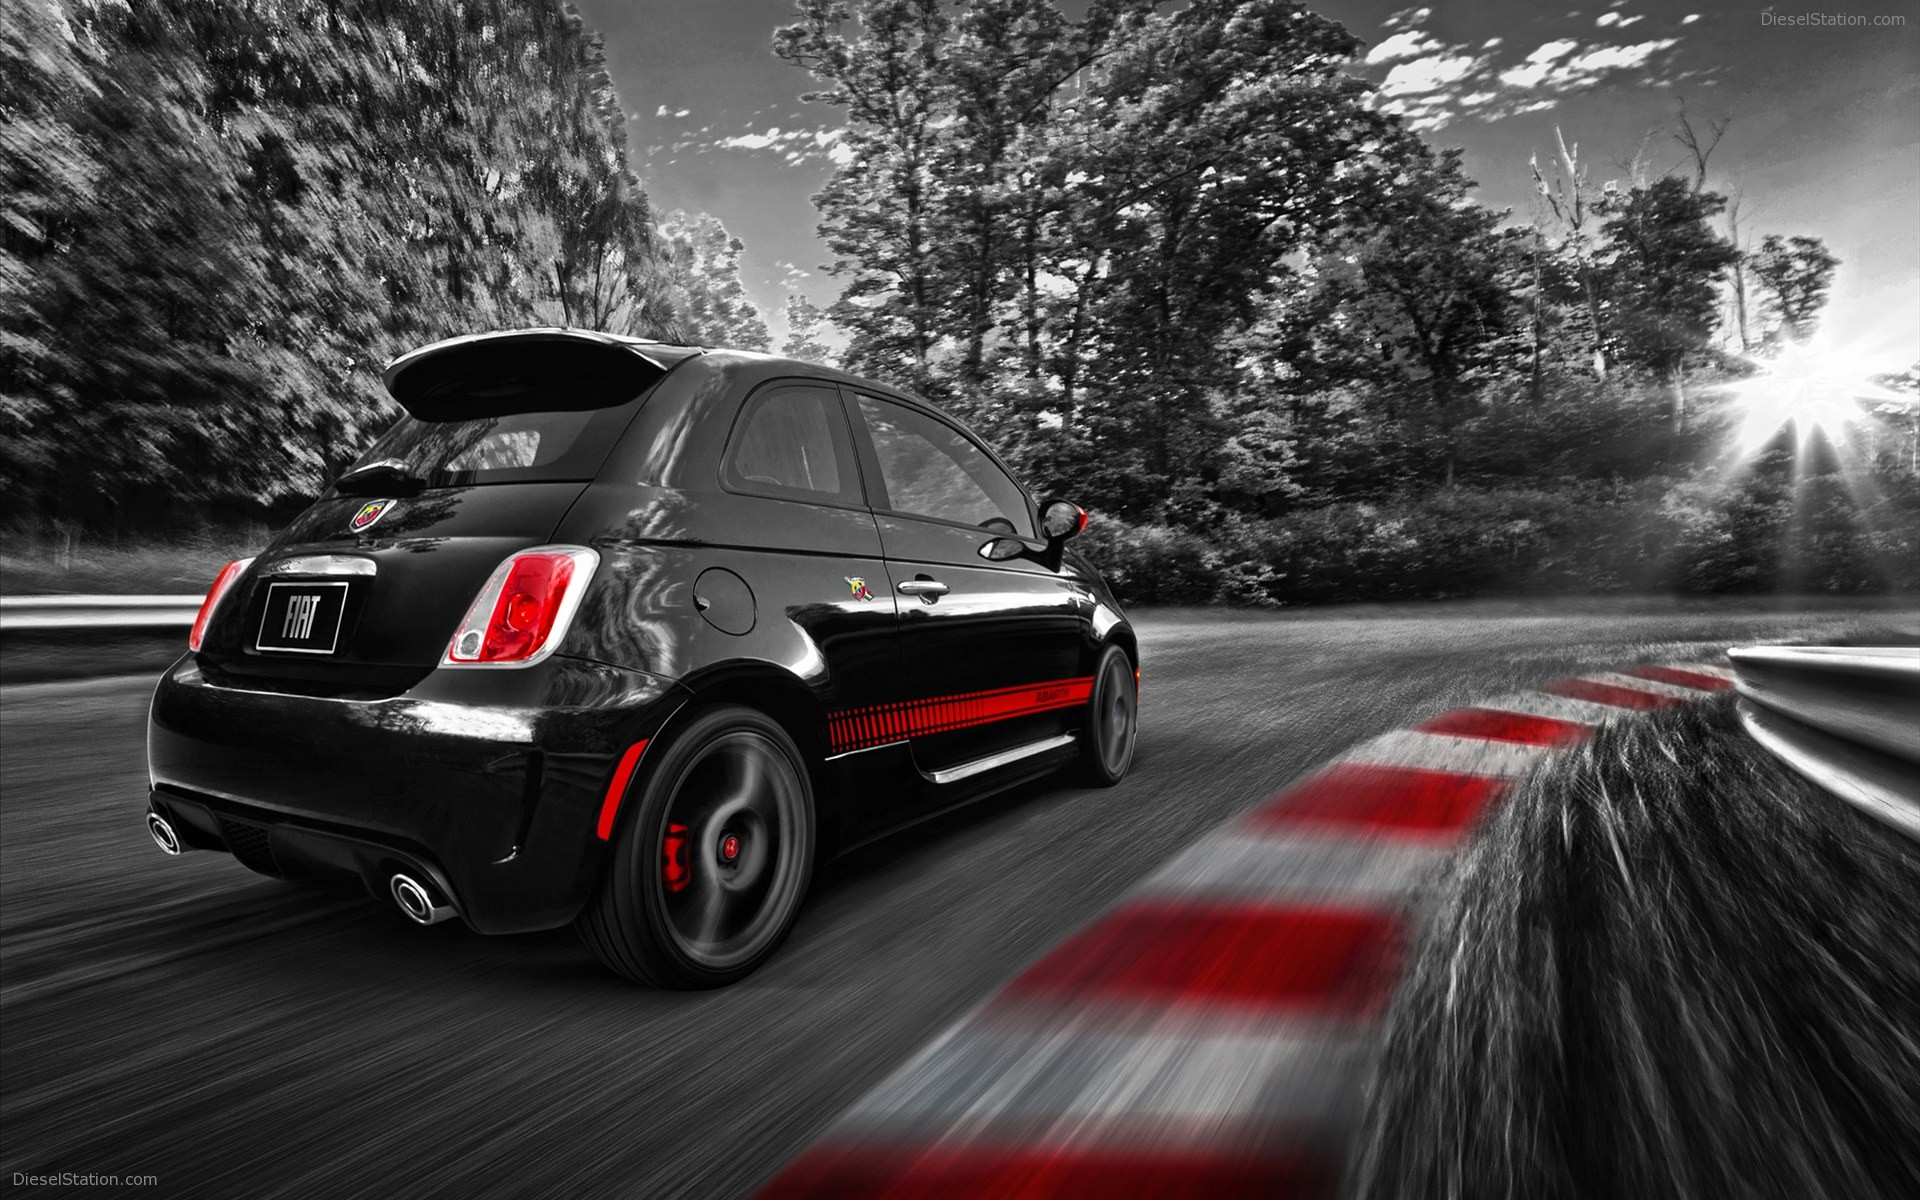 Fiat 500 Abarth 2012 Widescreen Exotic Car WallpapersBest Of The Best 1920x1200